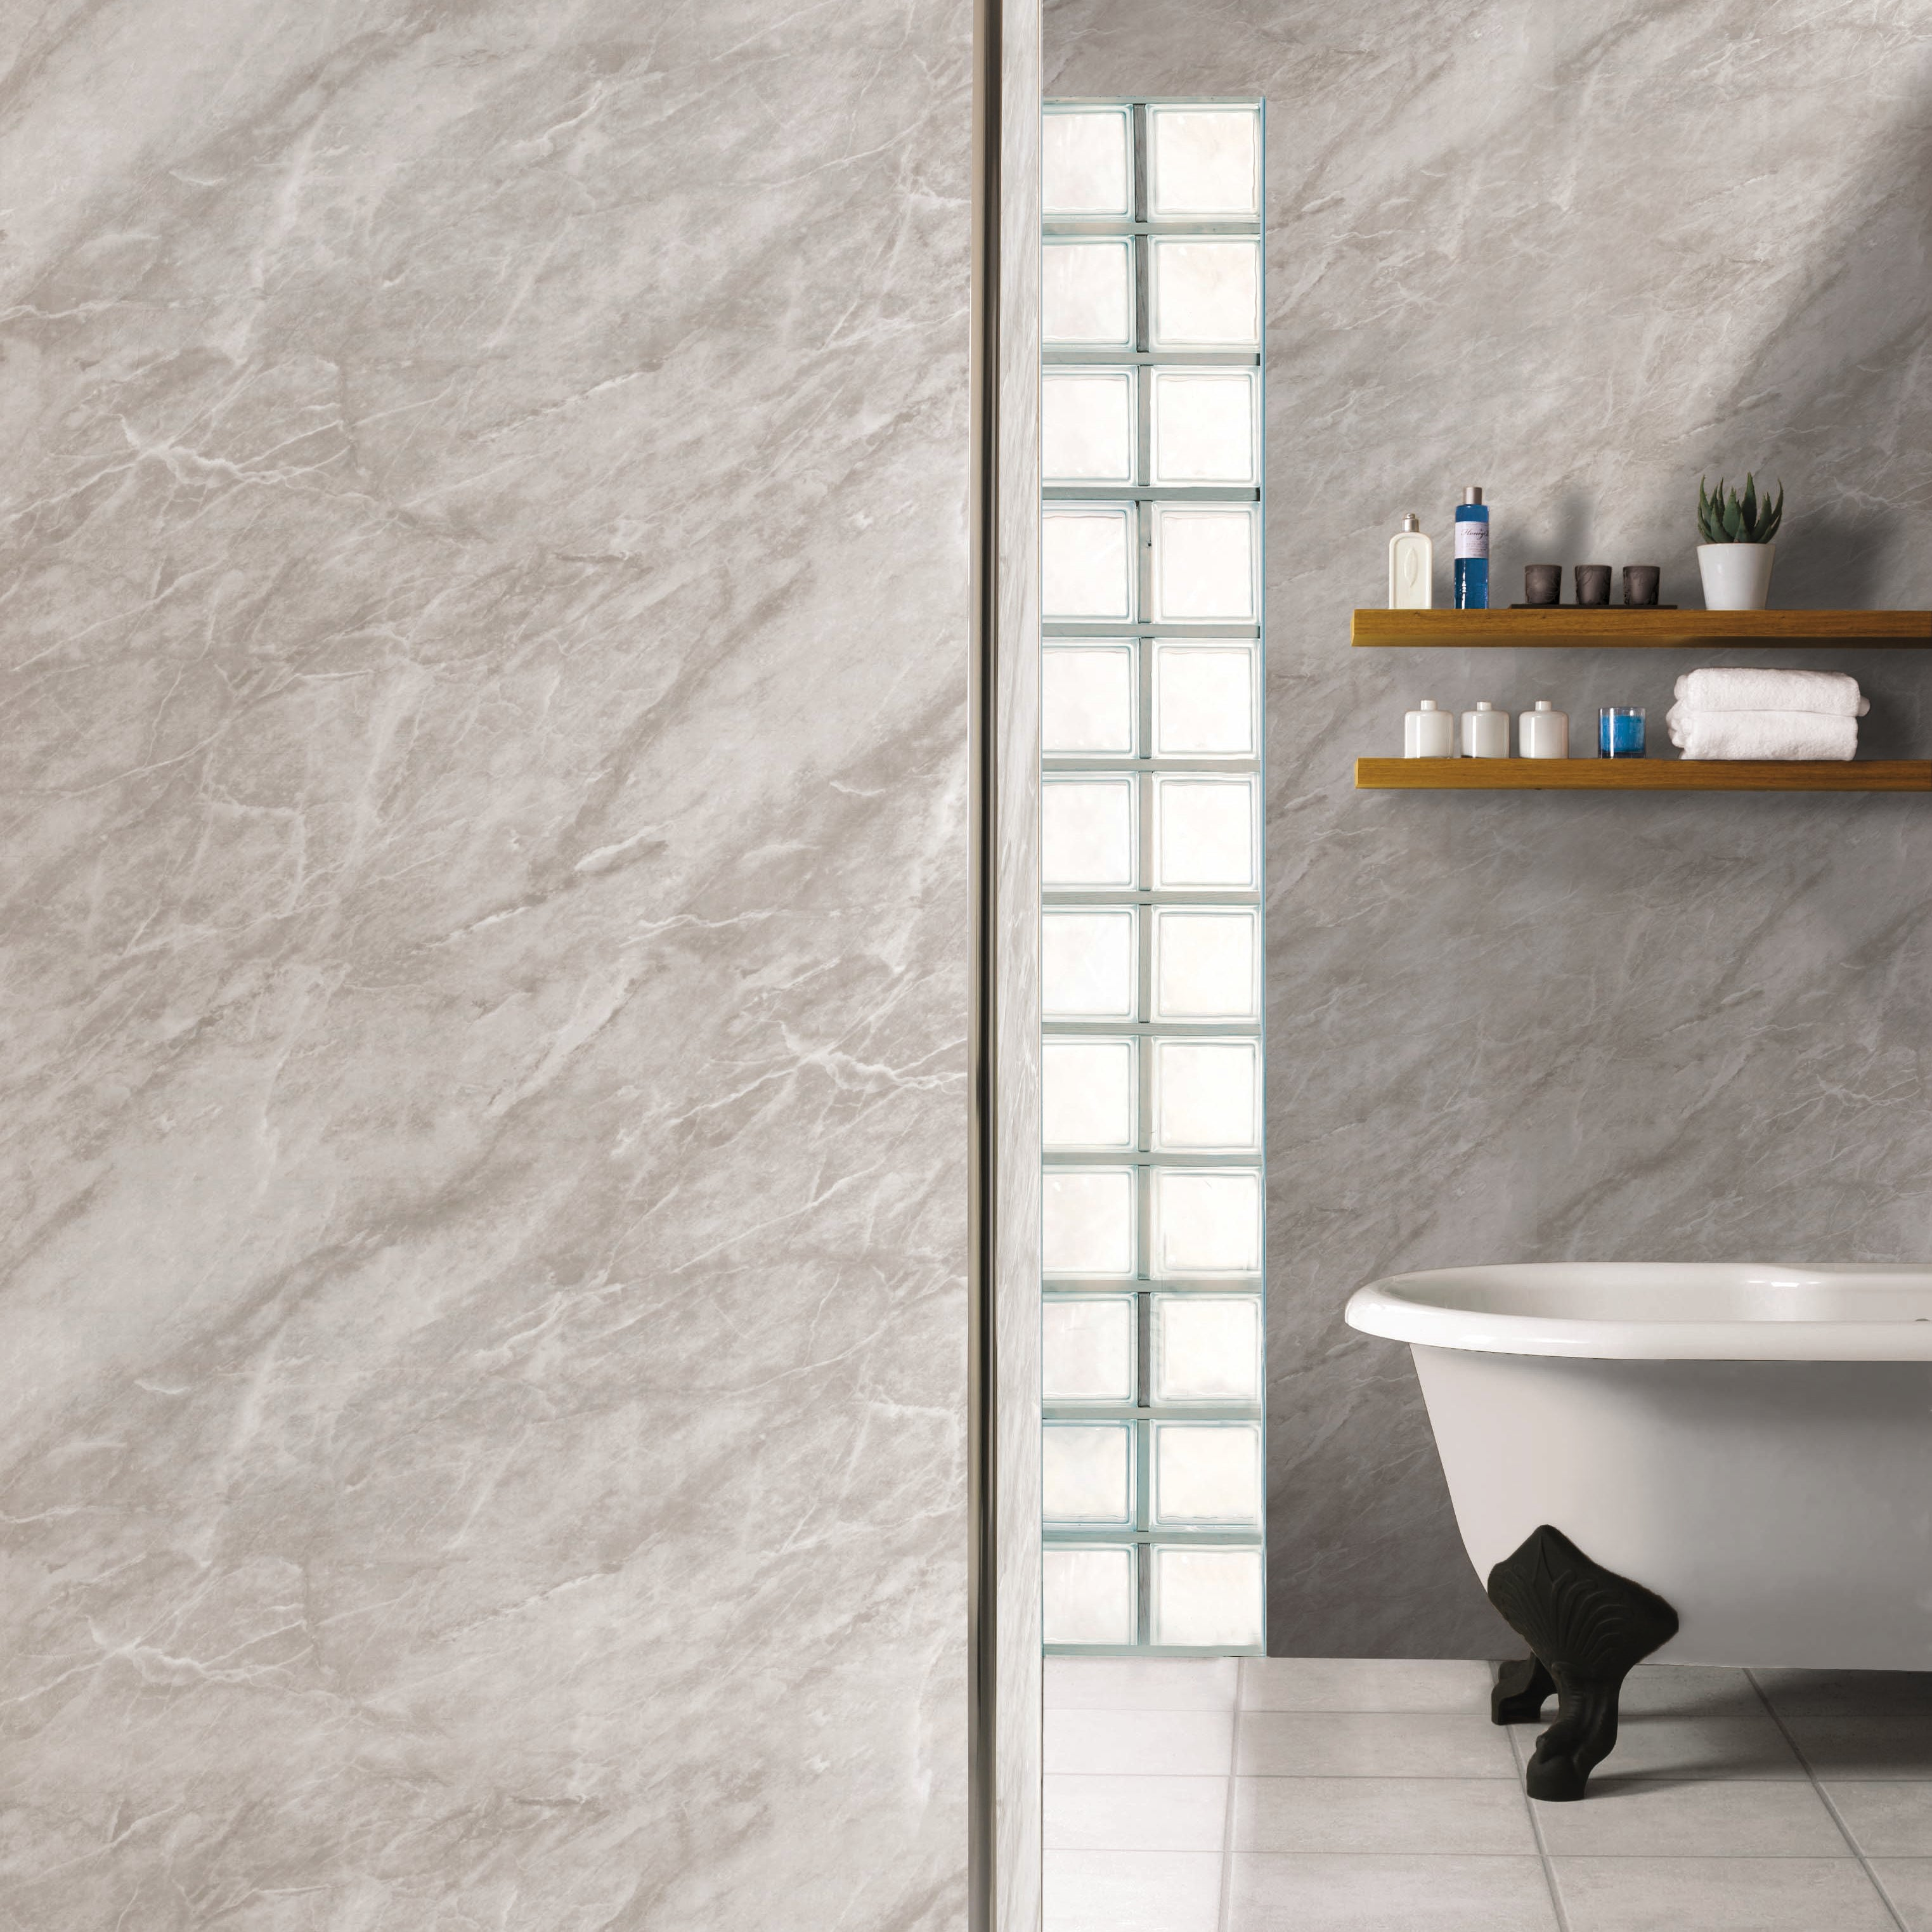 10mm SplashPanel Wall Panel (1m x 2.4m | SPL03 | Light Grey Marble)